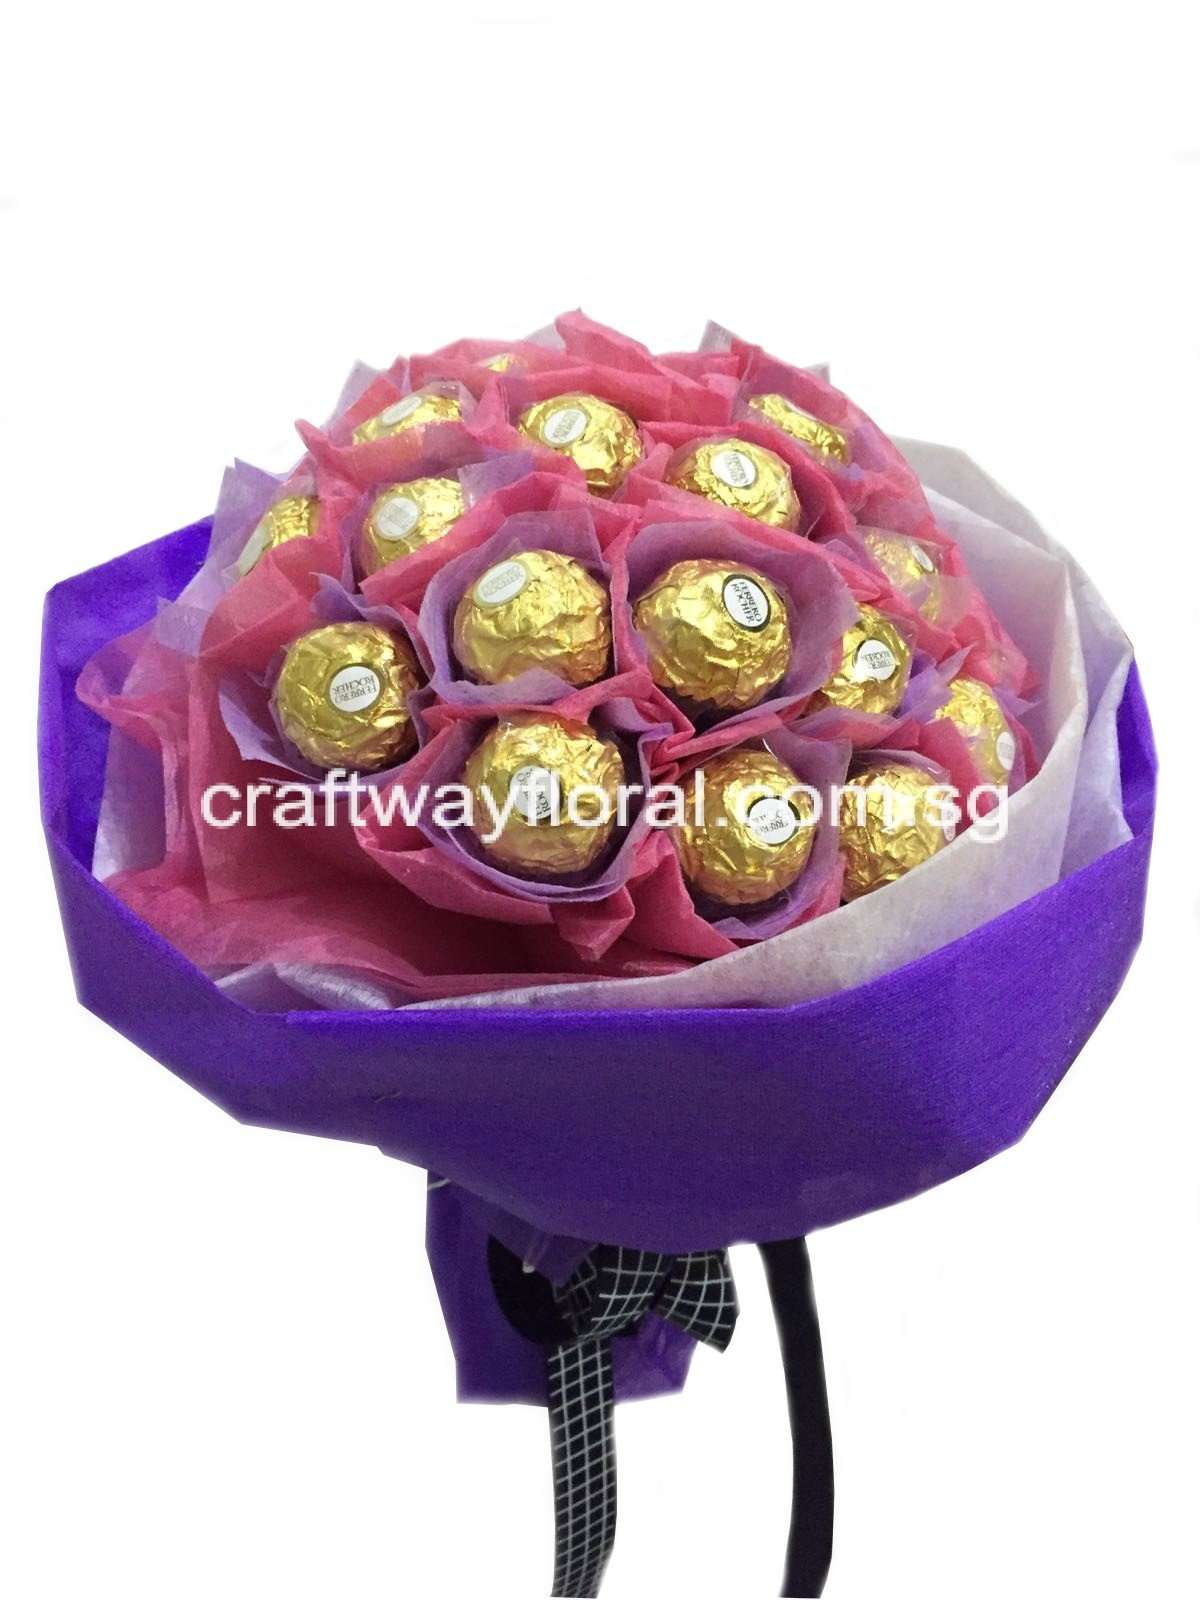 Ferrero Rocher Bouquet - Craftway Floral & Gifts